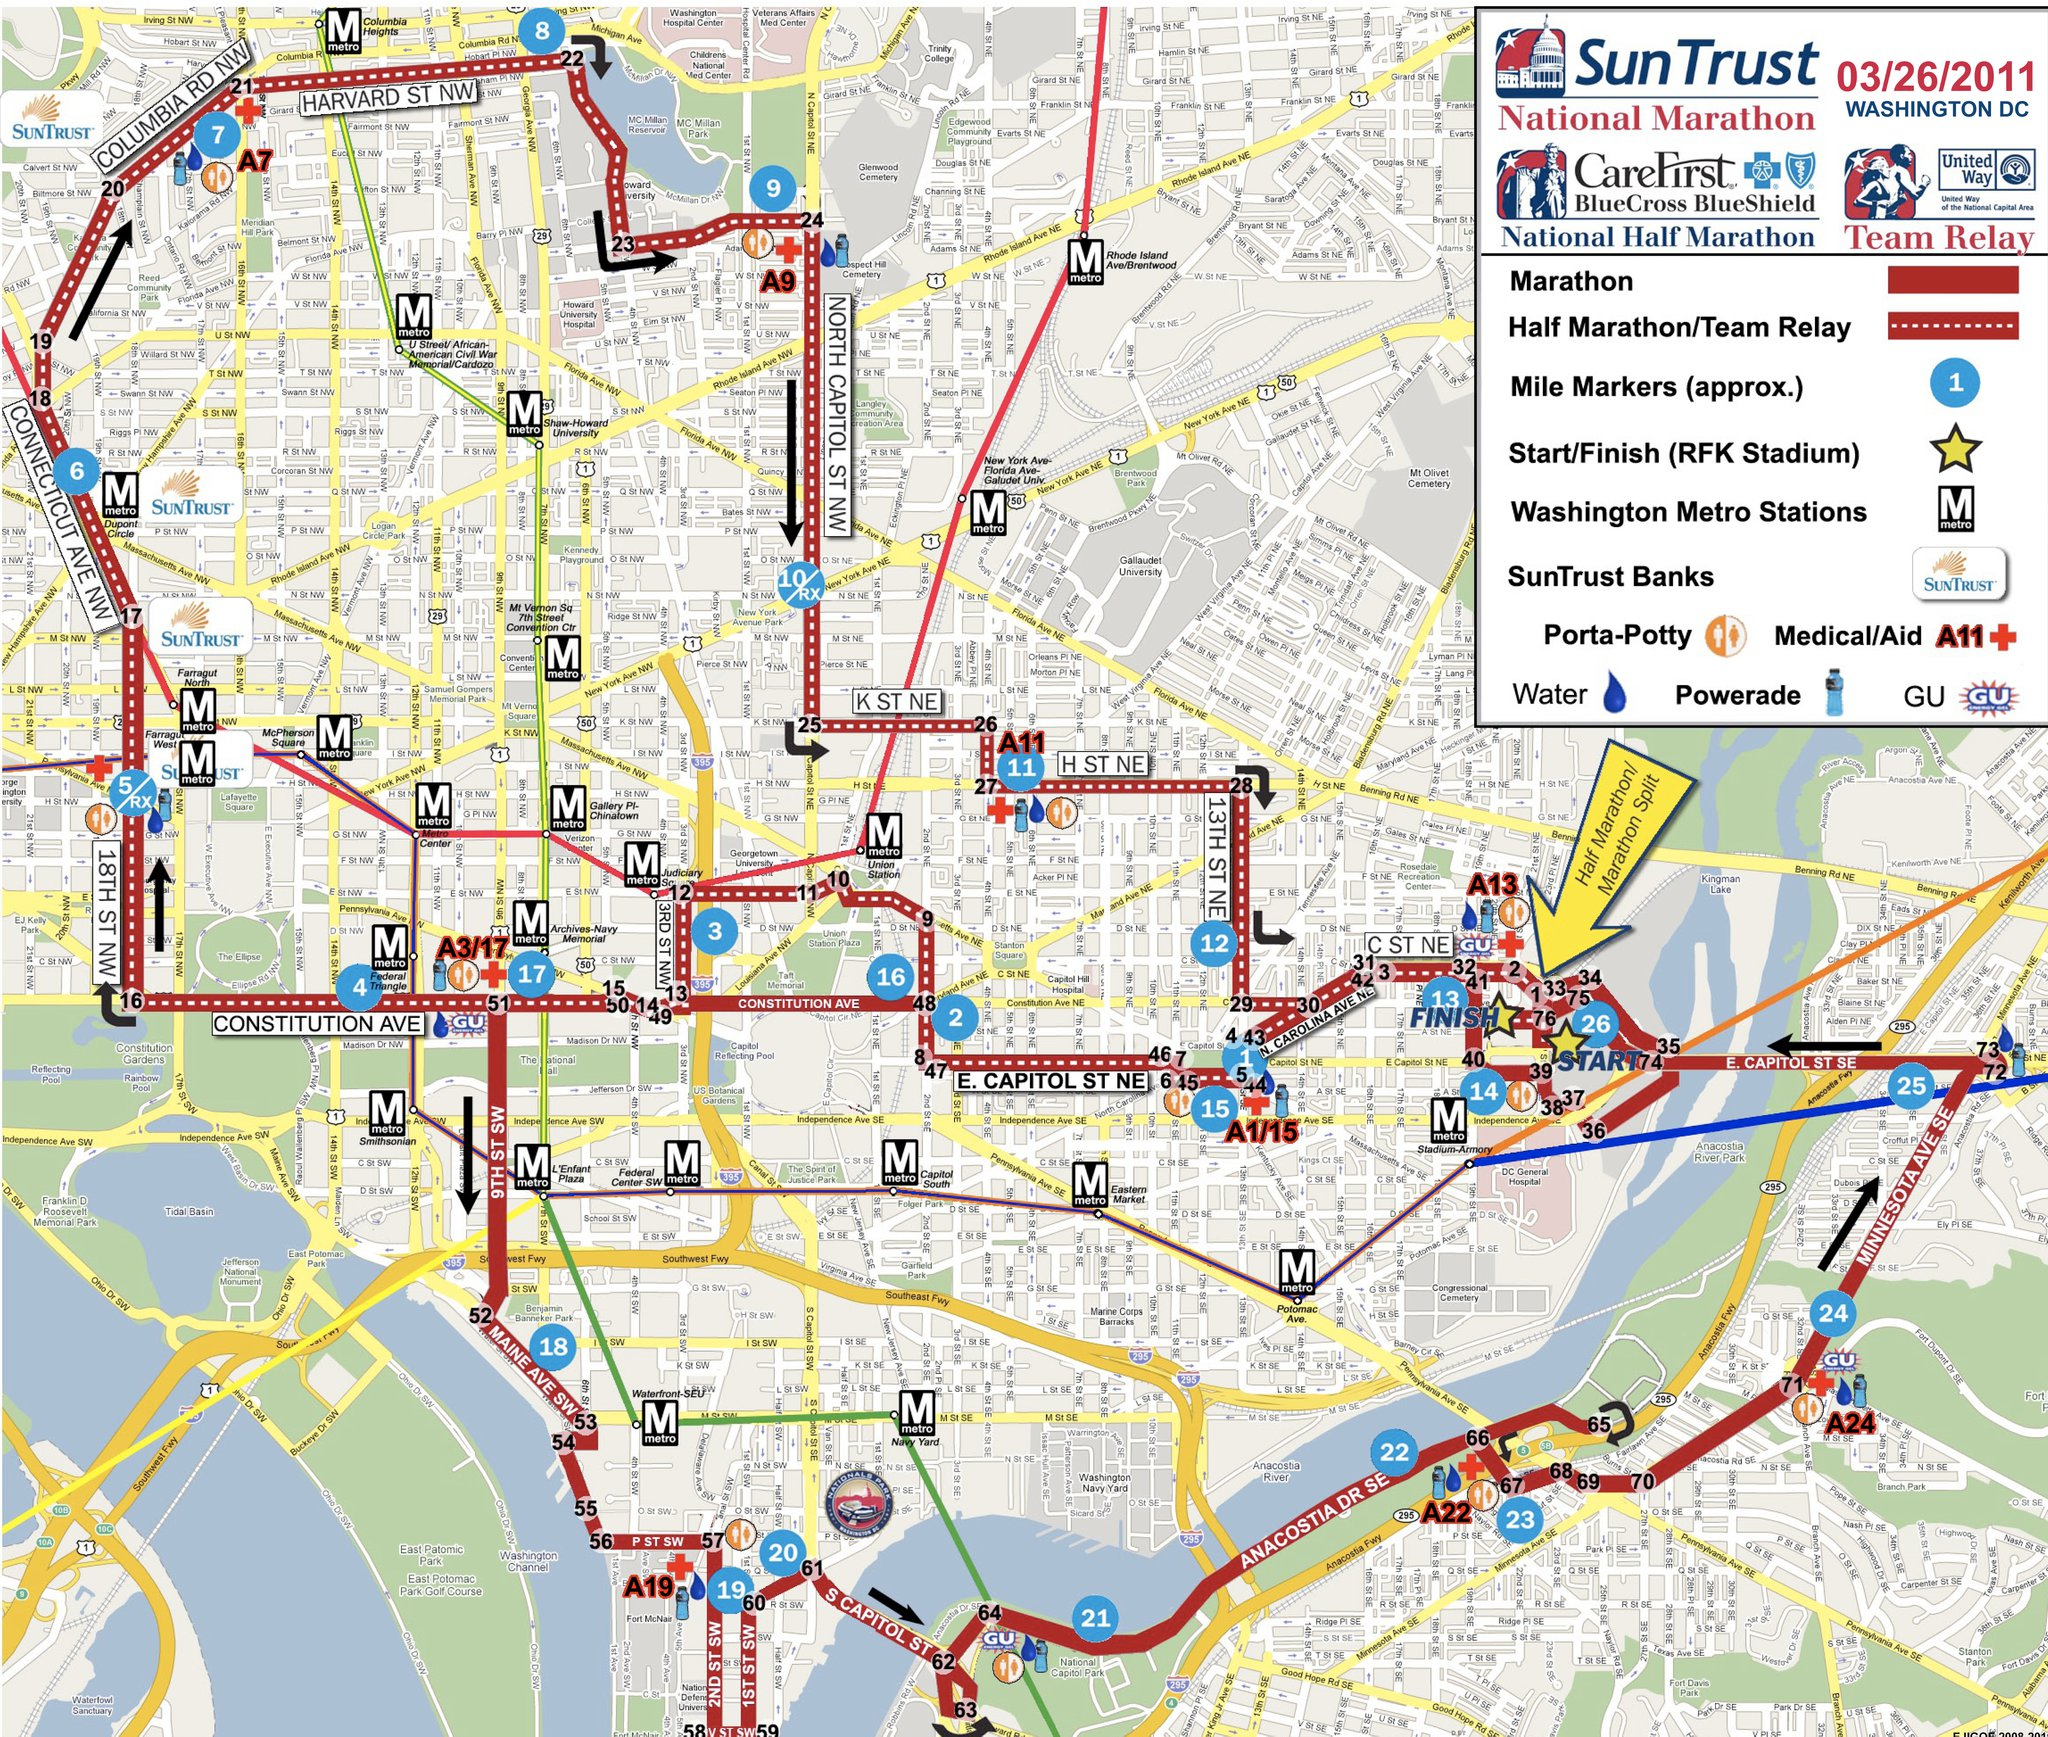 rock and roll marathon route map with 2011 Sun Trust National Marathon Is Tomorrow on 1140051 besides Vancouver Sun Run Road Closures And Route Map moreover Rock N Roll San Diego Elevation Chart together with Ing New York City Marathon 2013 Review moreover Rock N Roll Las Vegas Half Marathon.